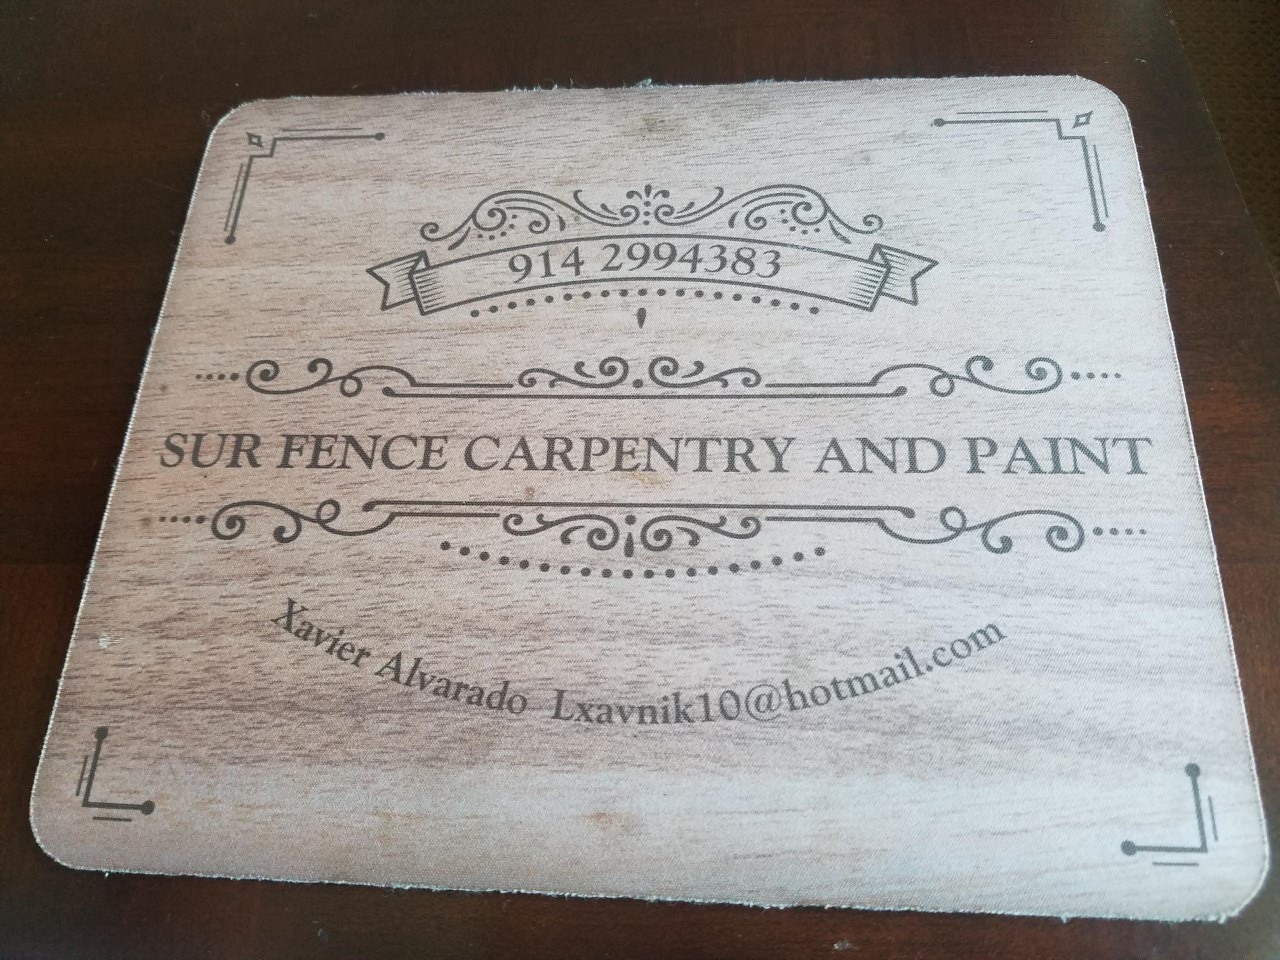 Sur Fence Carpentry and Paint